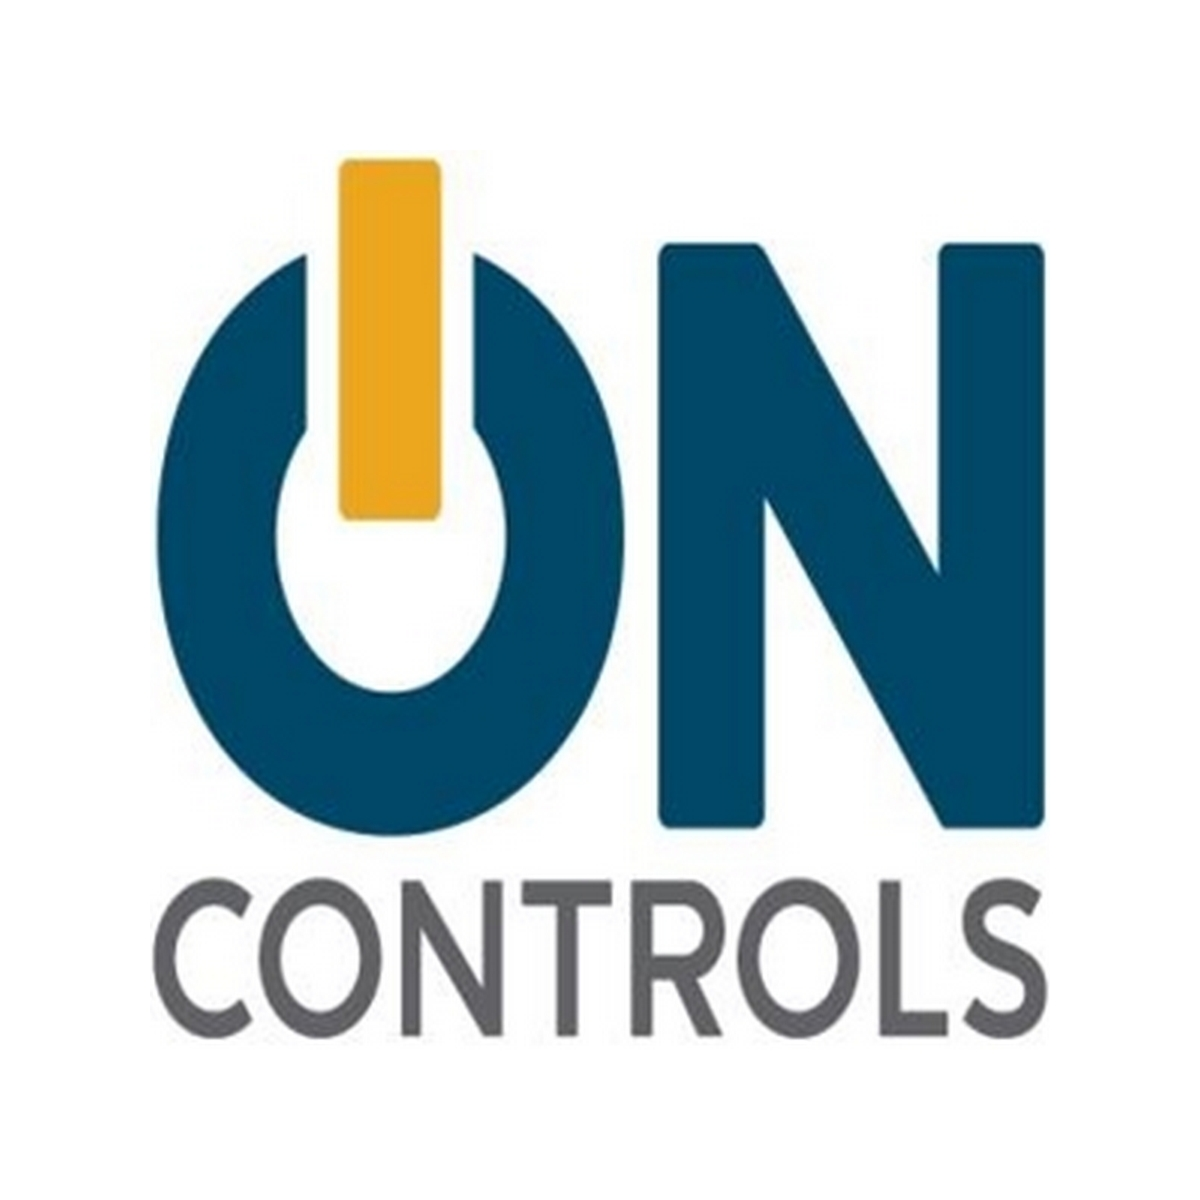 ONCONTROLS POE Contact - 3 addressable contact closures. Directly connect to PoE router/switch